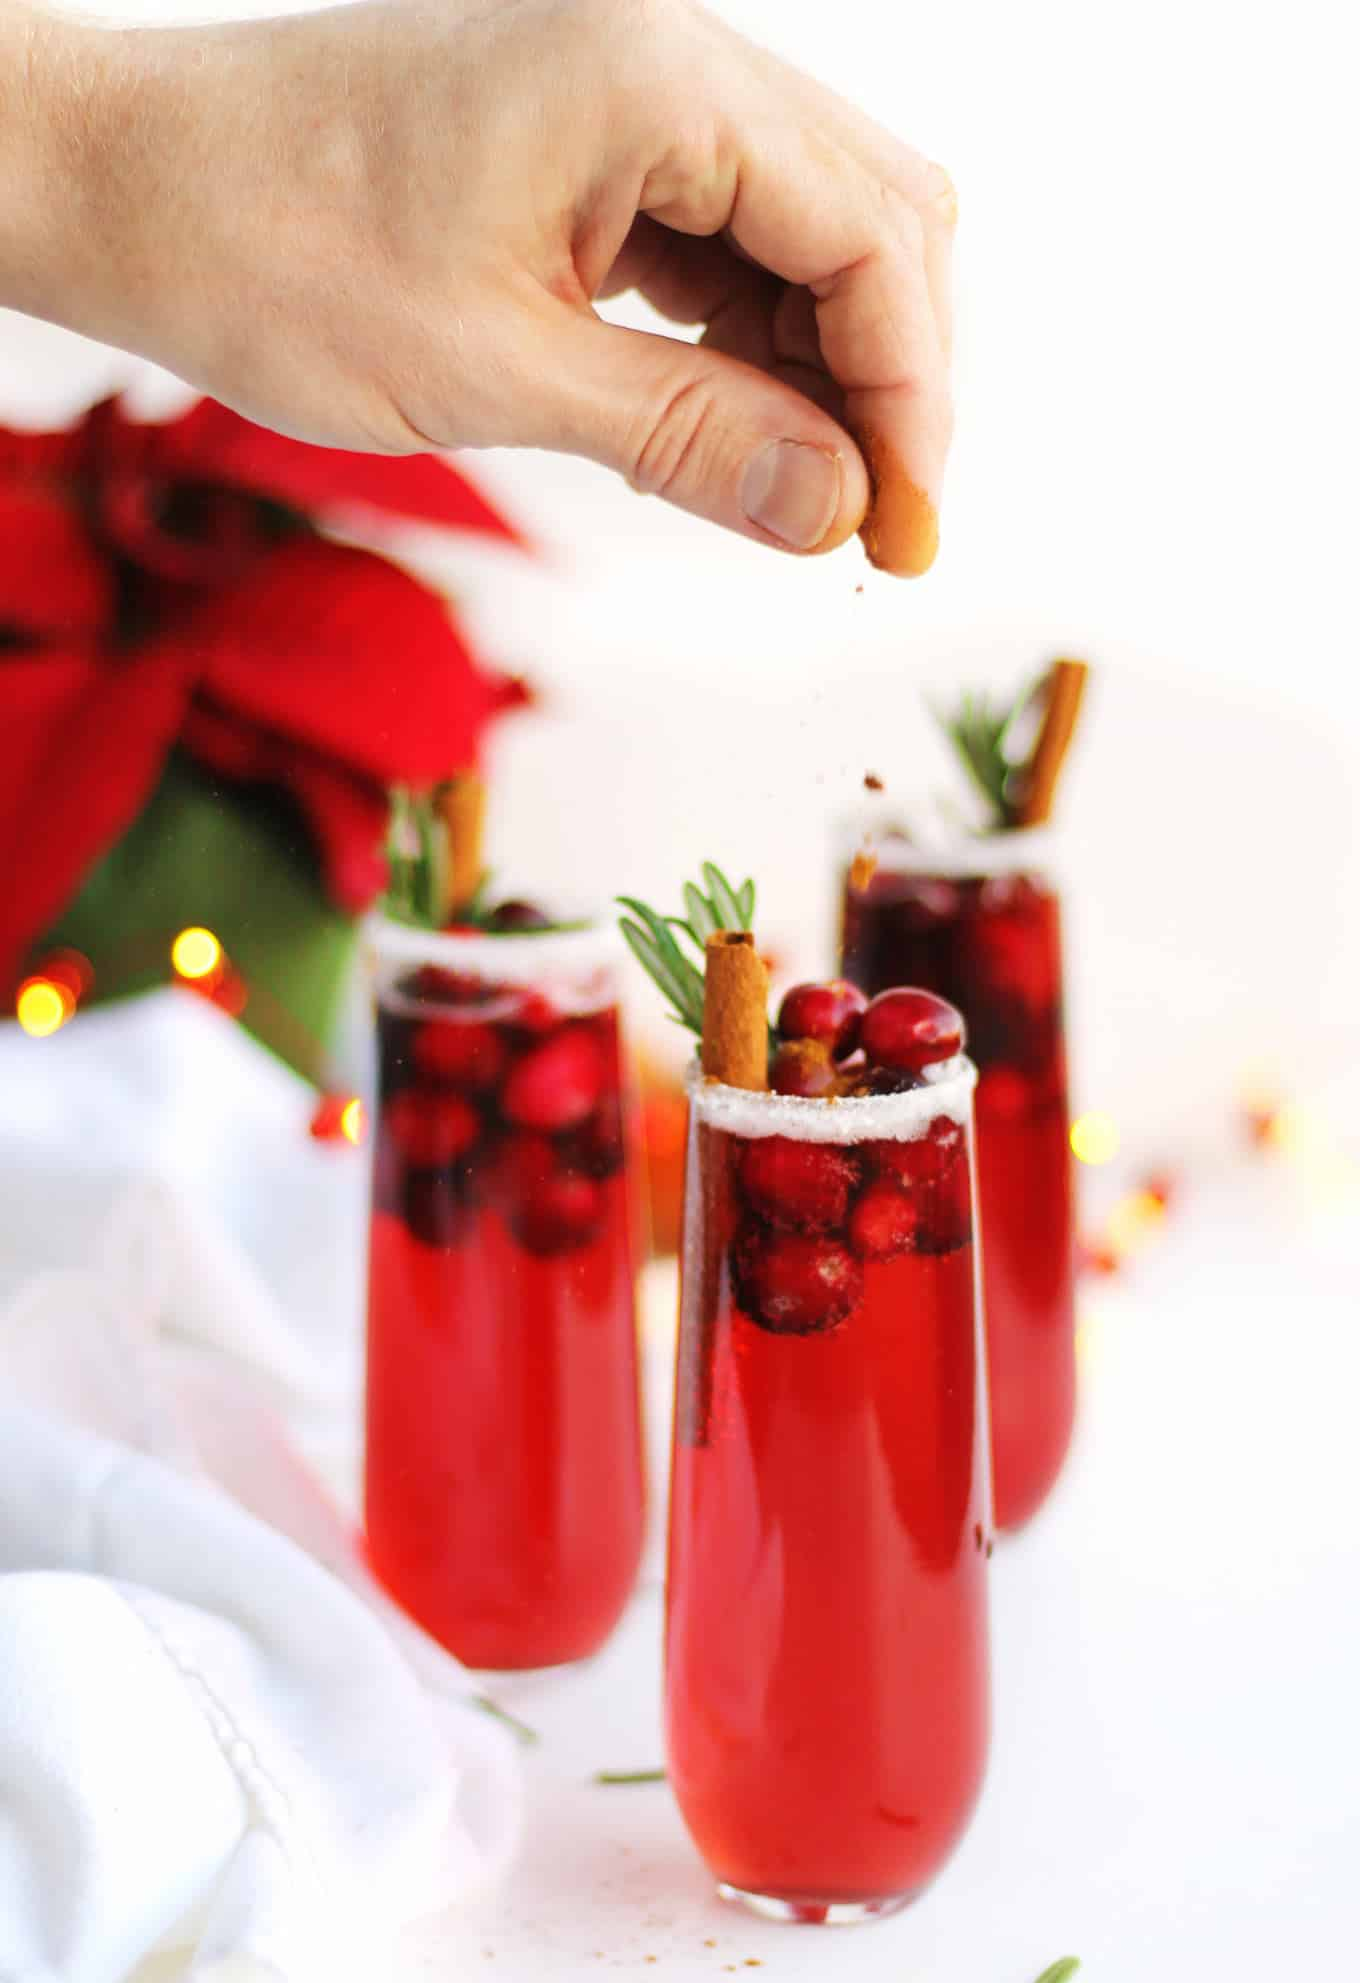 sprinkling cinnamon onto a holiday cranberry mimosa